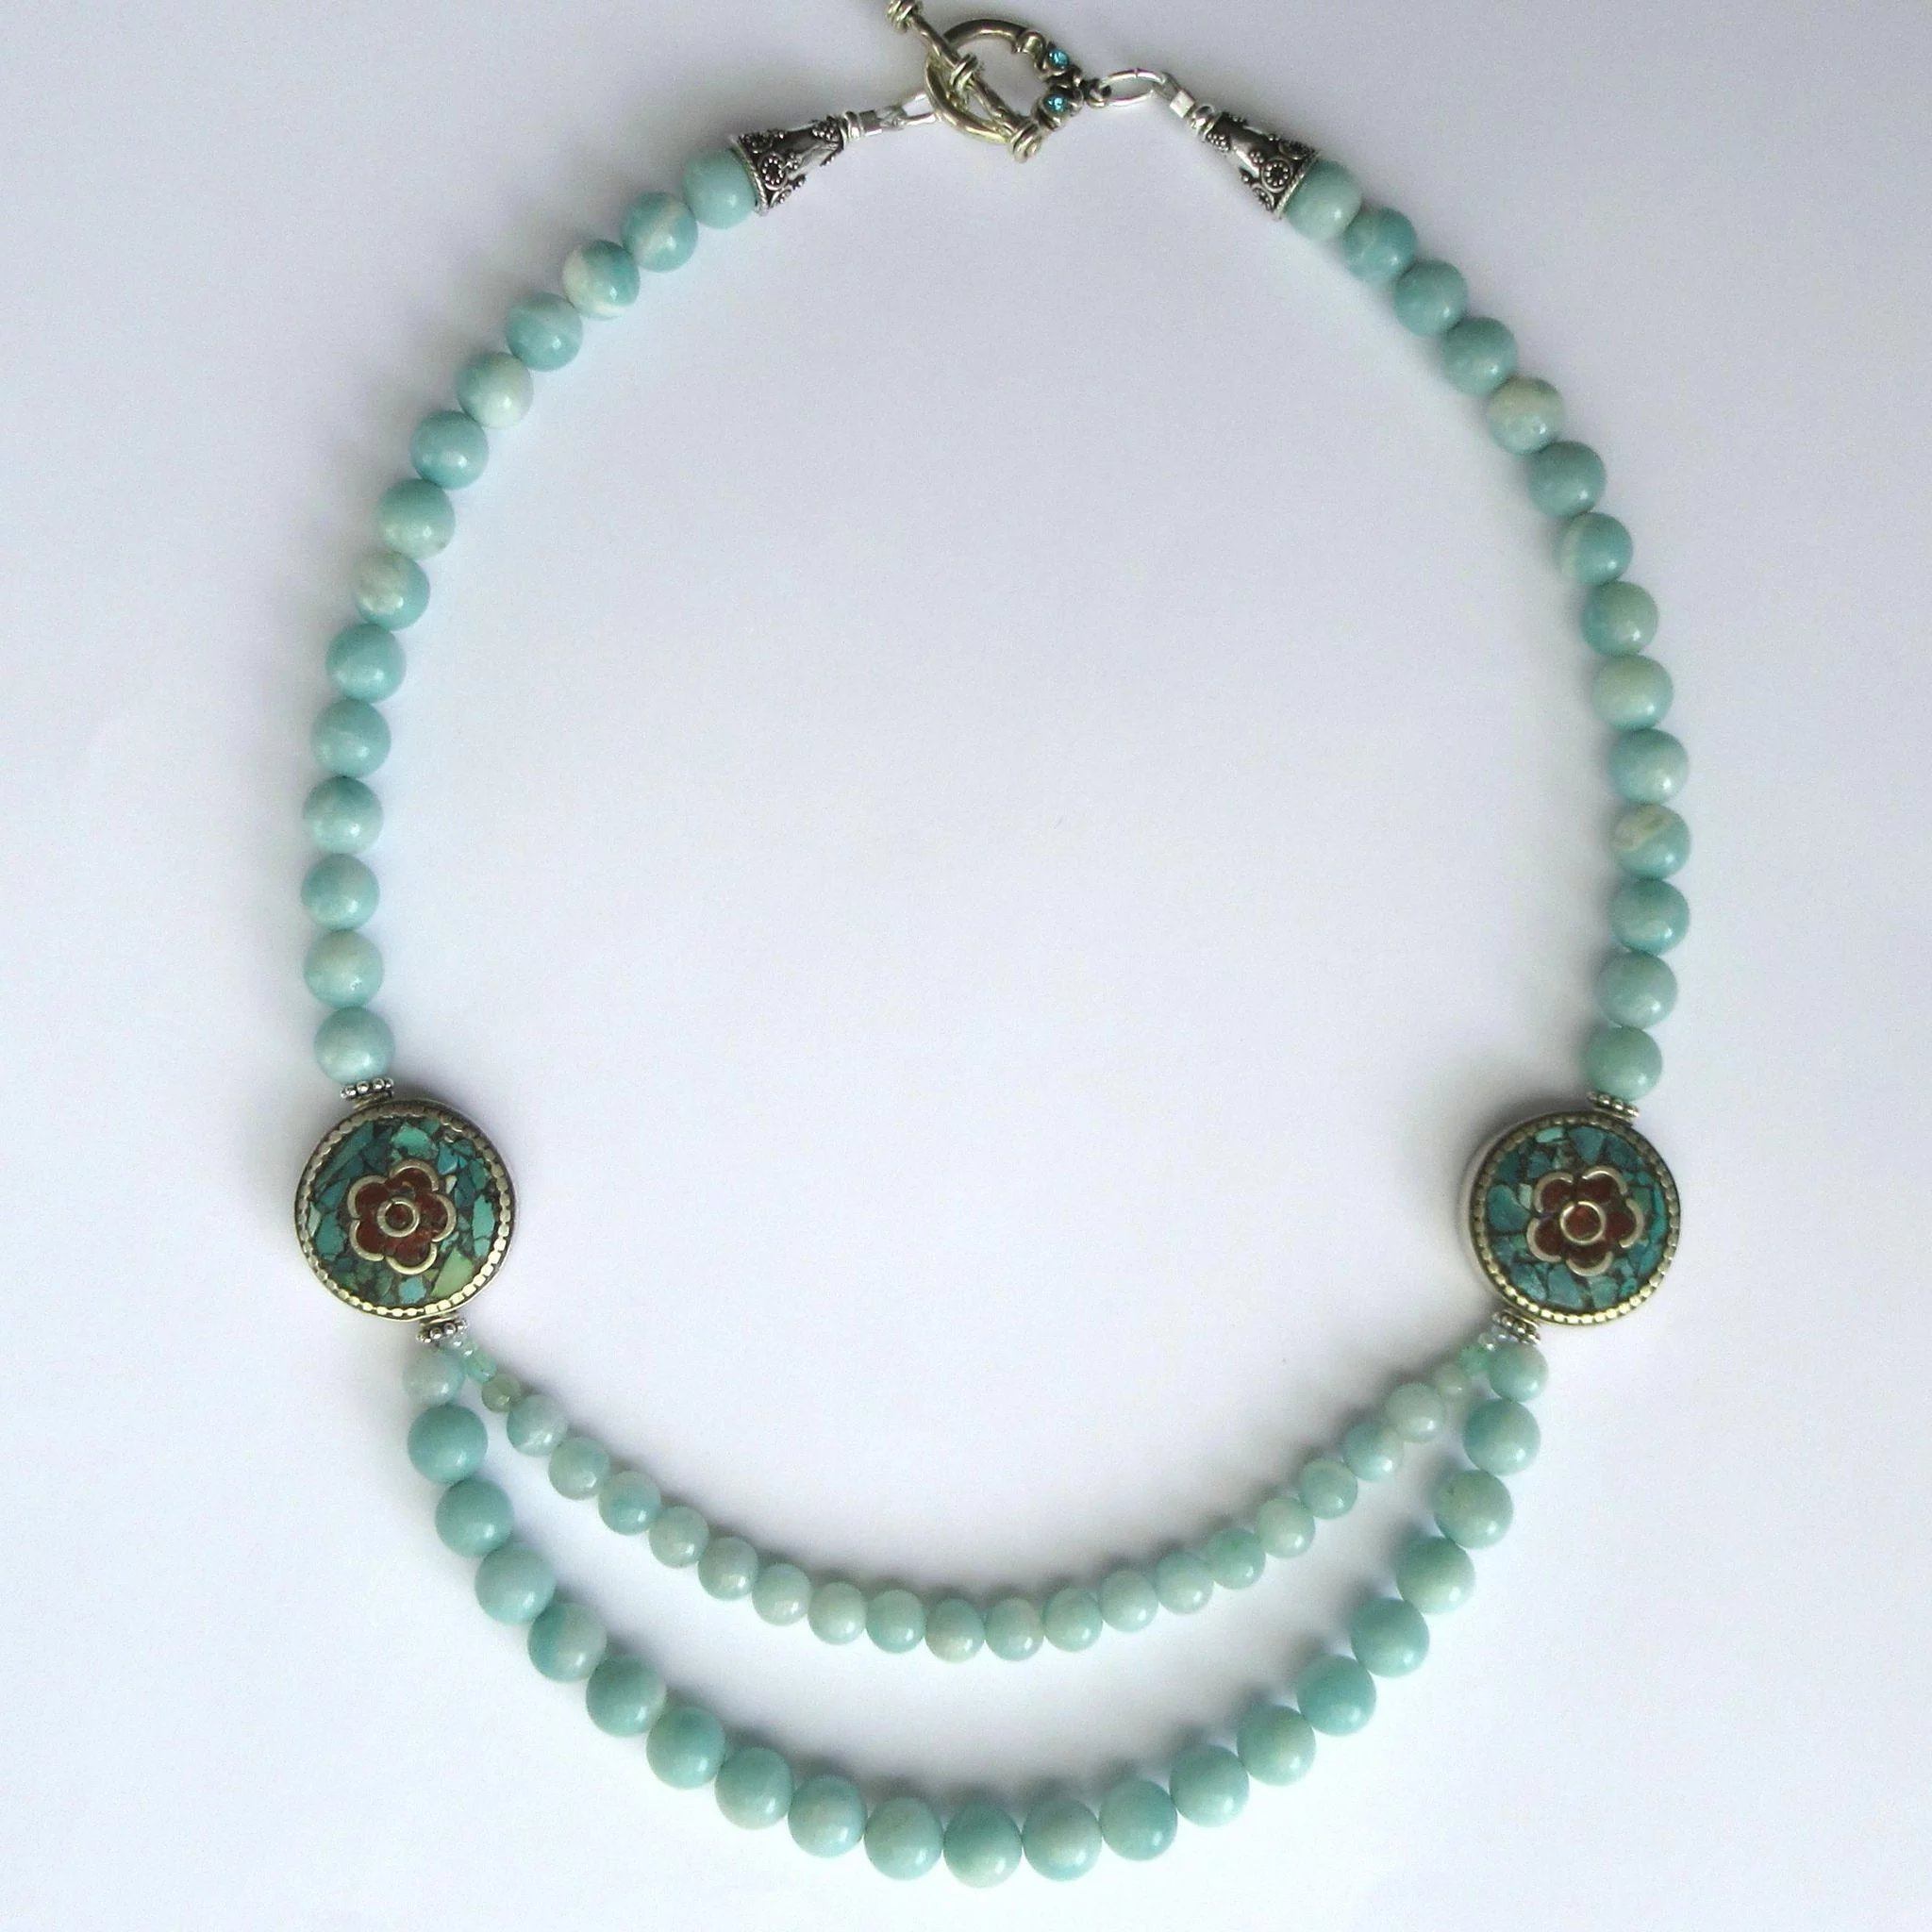 lily mad amazonite products necklace love image stone design